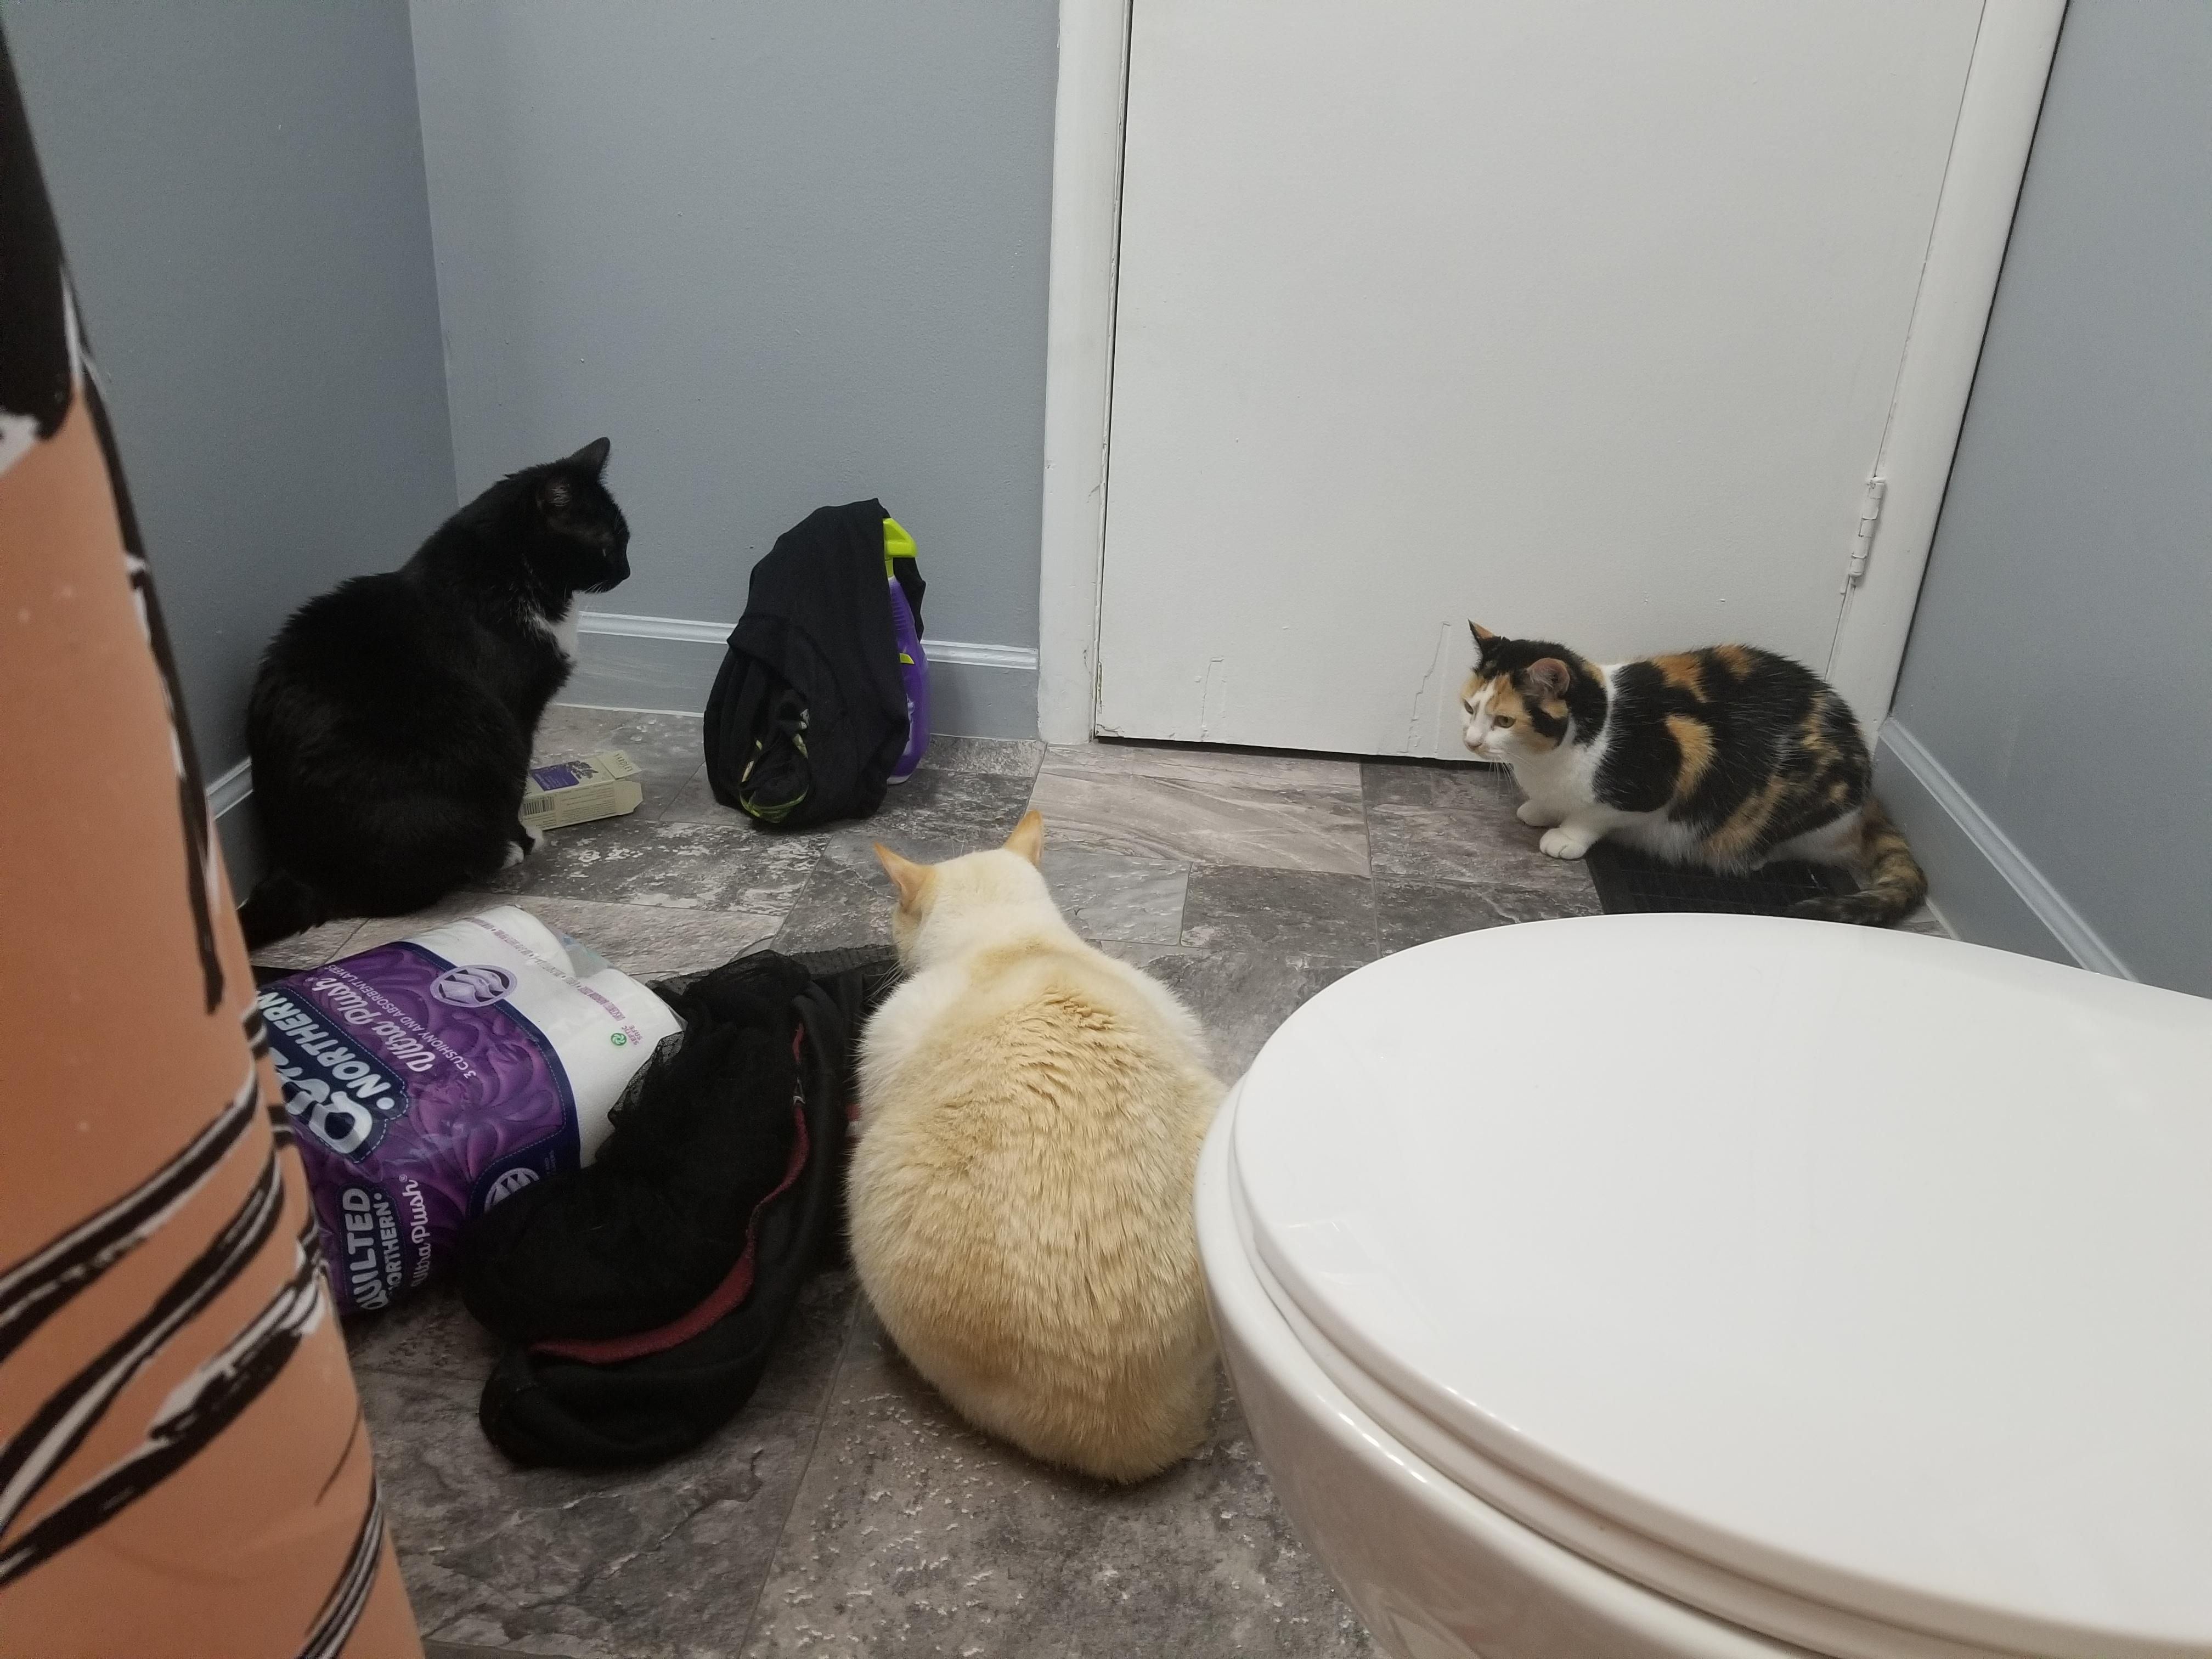 The Cats Were Crying Because I M In The Bath So Hubby Has Been Putting Them In The Bathroom With Me One By One I Don T Think This Is What Th Cats